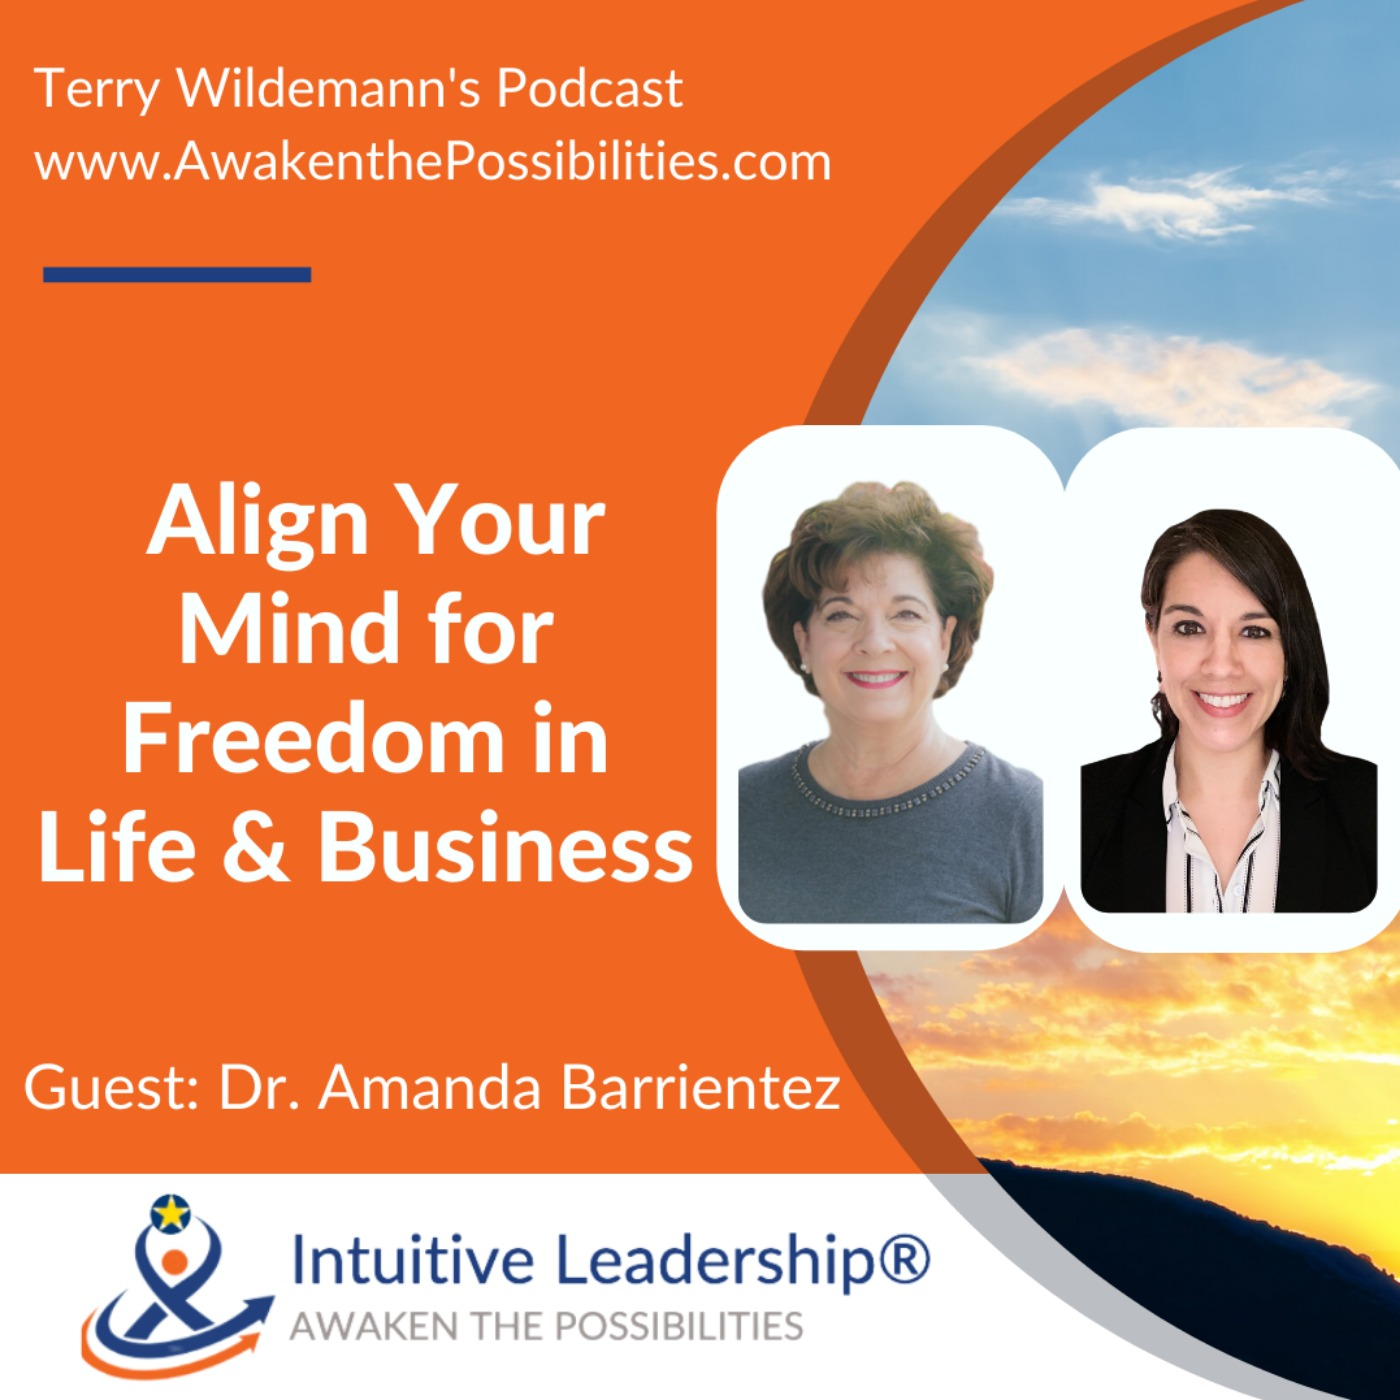 Align Your Mind for Freedom in Life & Business